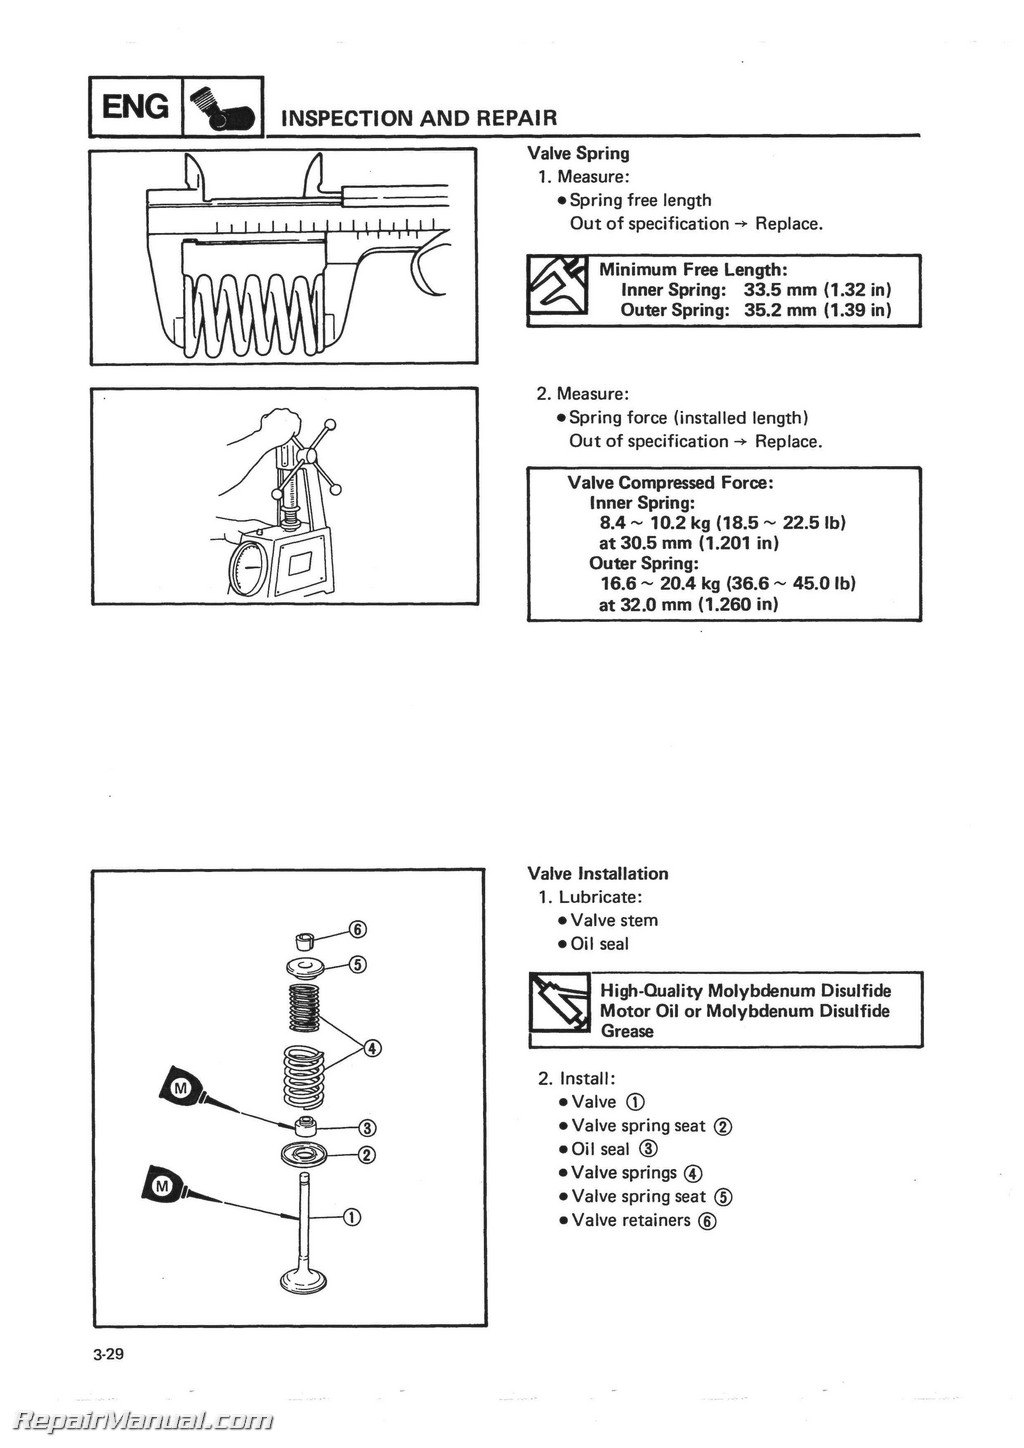 yamaha moto 4 200 wiring diagrams 5 pin dmx diagram xlr connector mic 1986 1988 yfm225 atv printed service manual